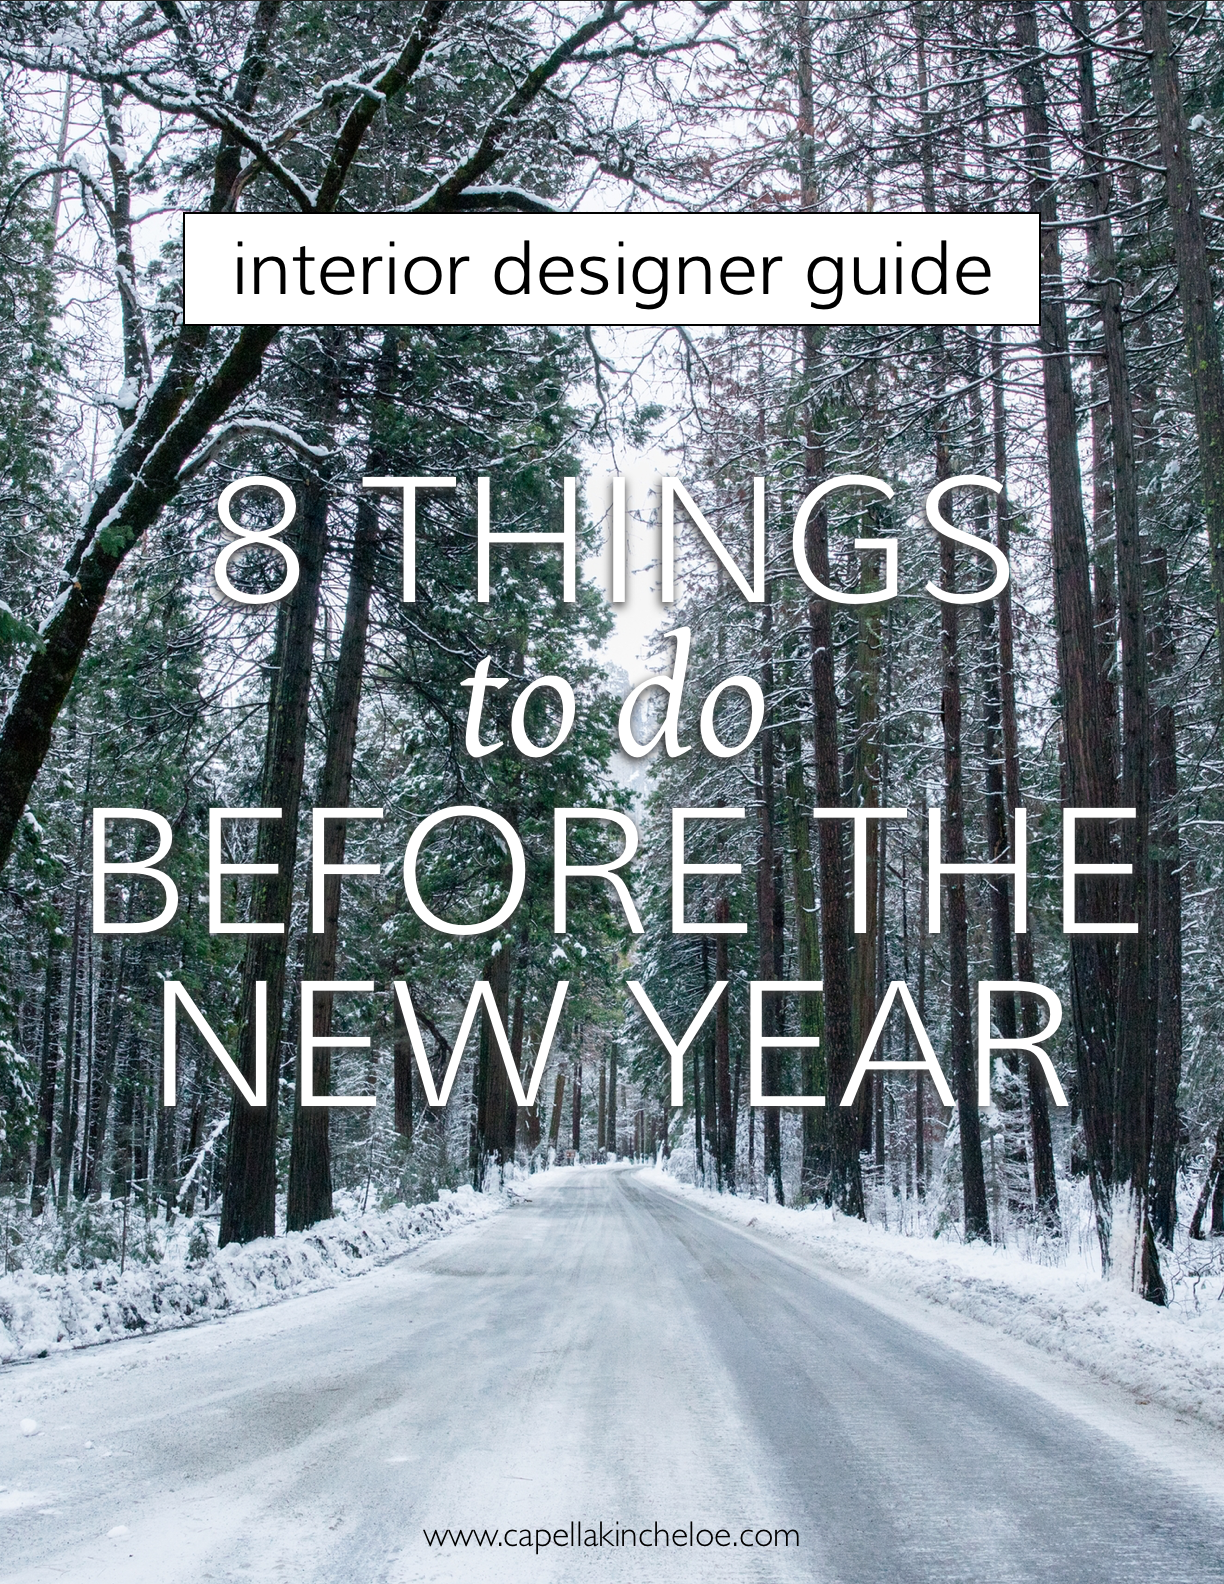 8 Things to do before the New Year when you're running an interior design business. #cktradesecrets #interiordesignbusiness #newyear